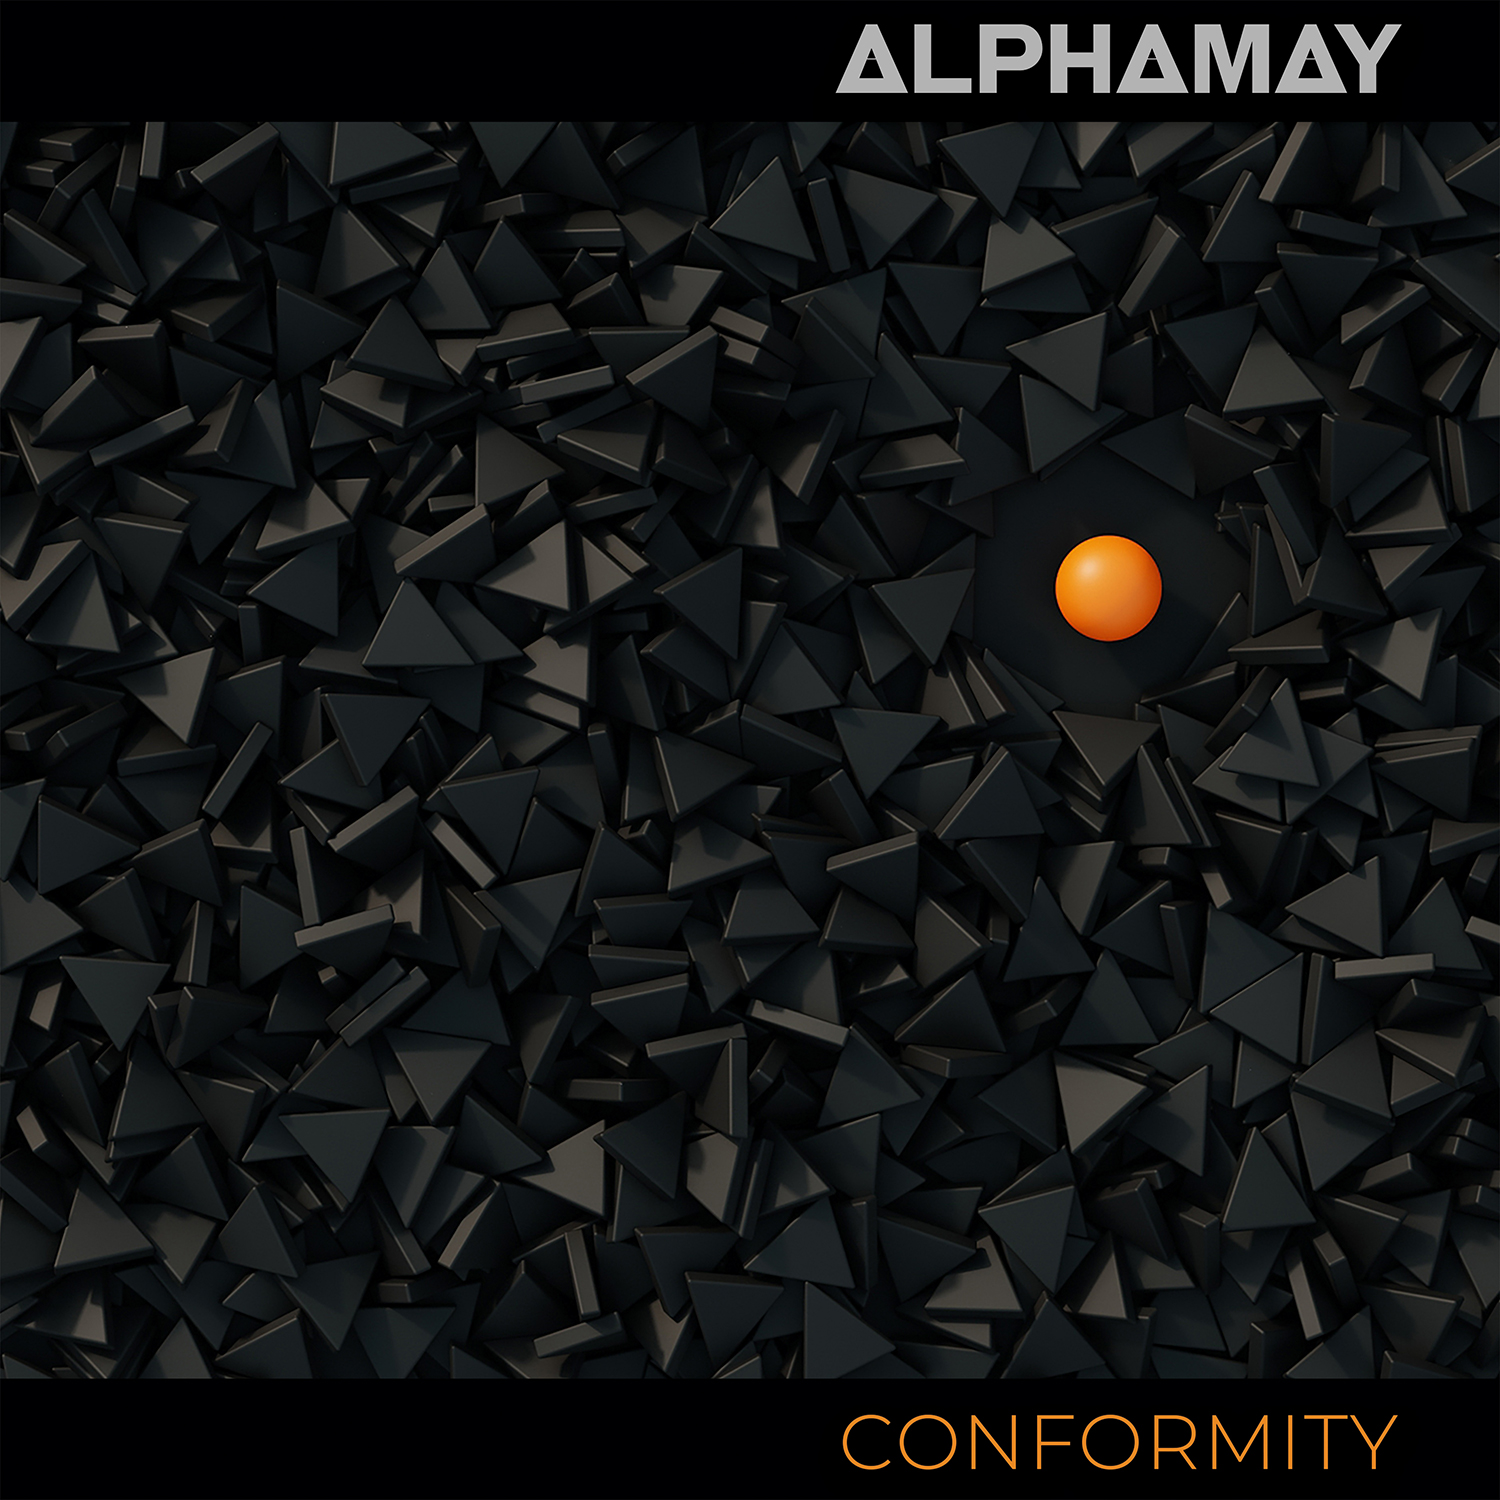 Alphamay - Conformity (CD)